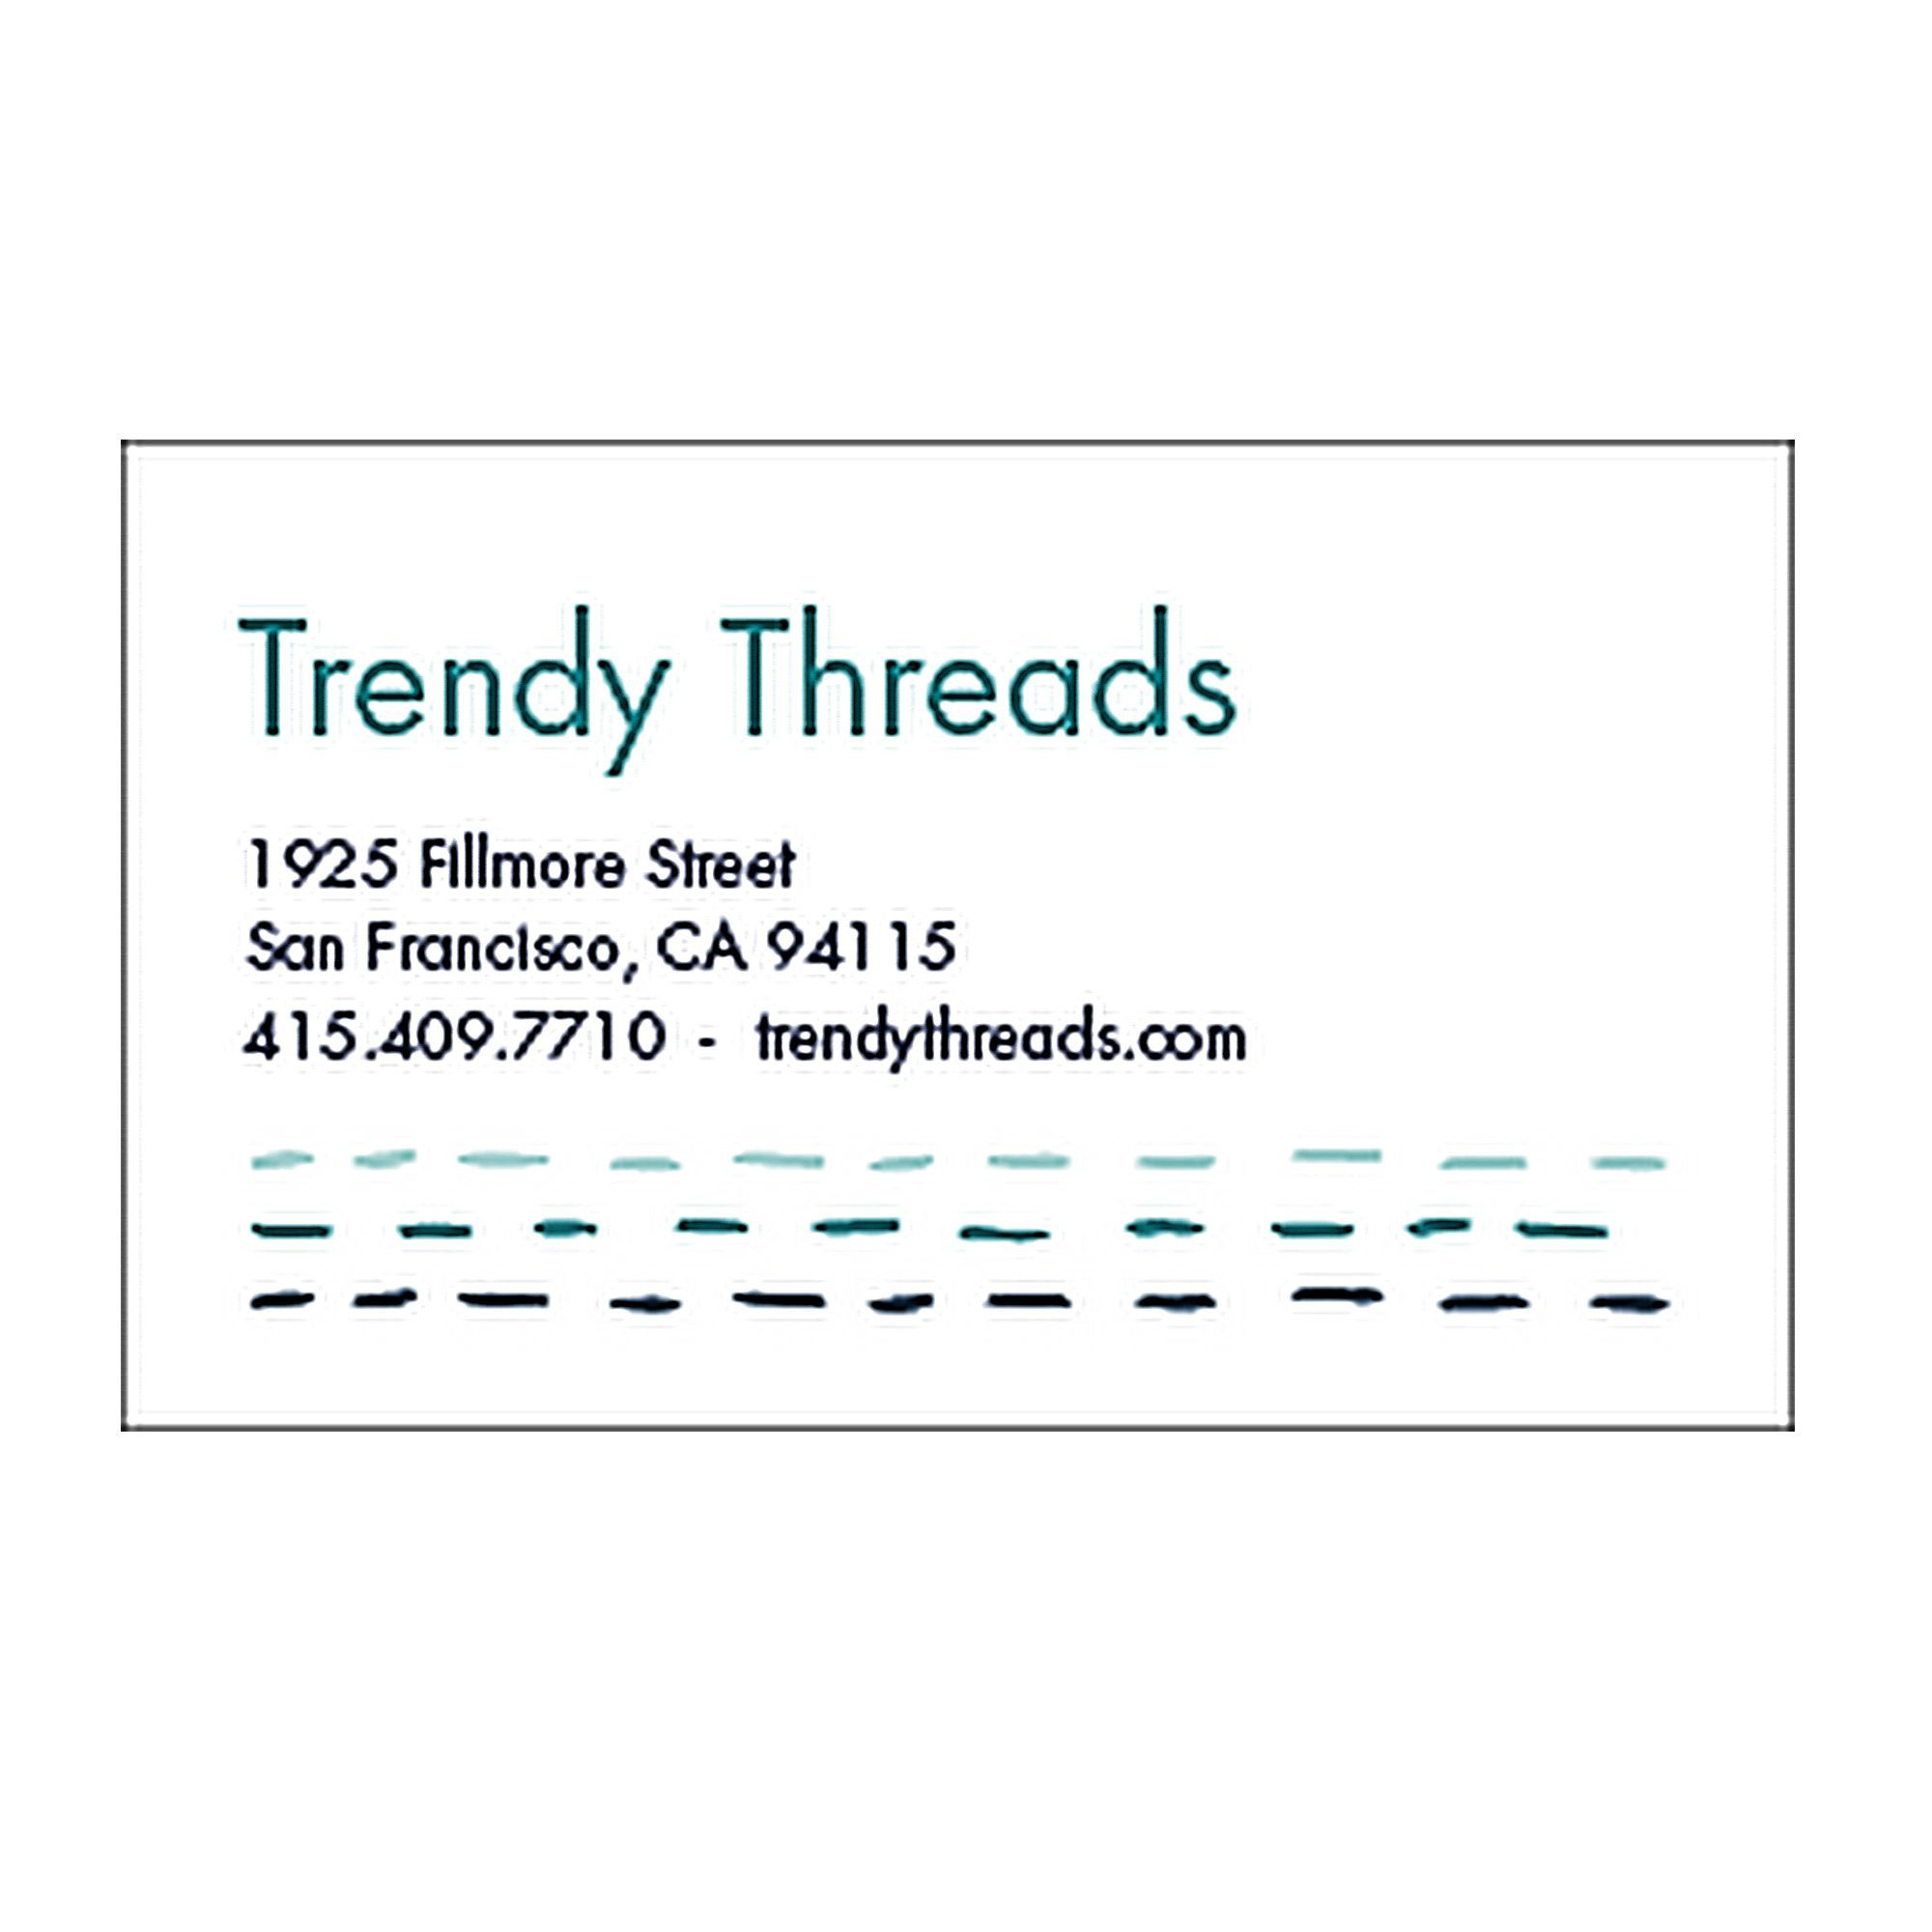 cool color and font/style combo Stitch Business Cards | FPD ...